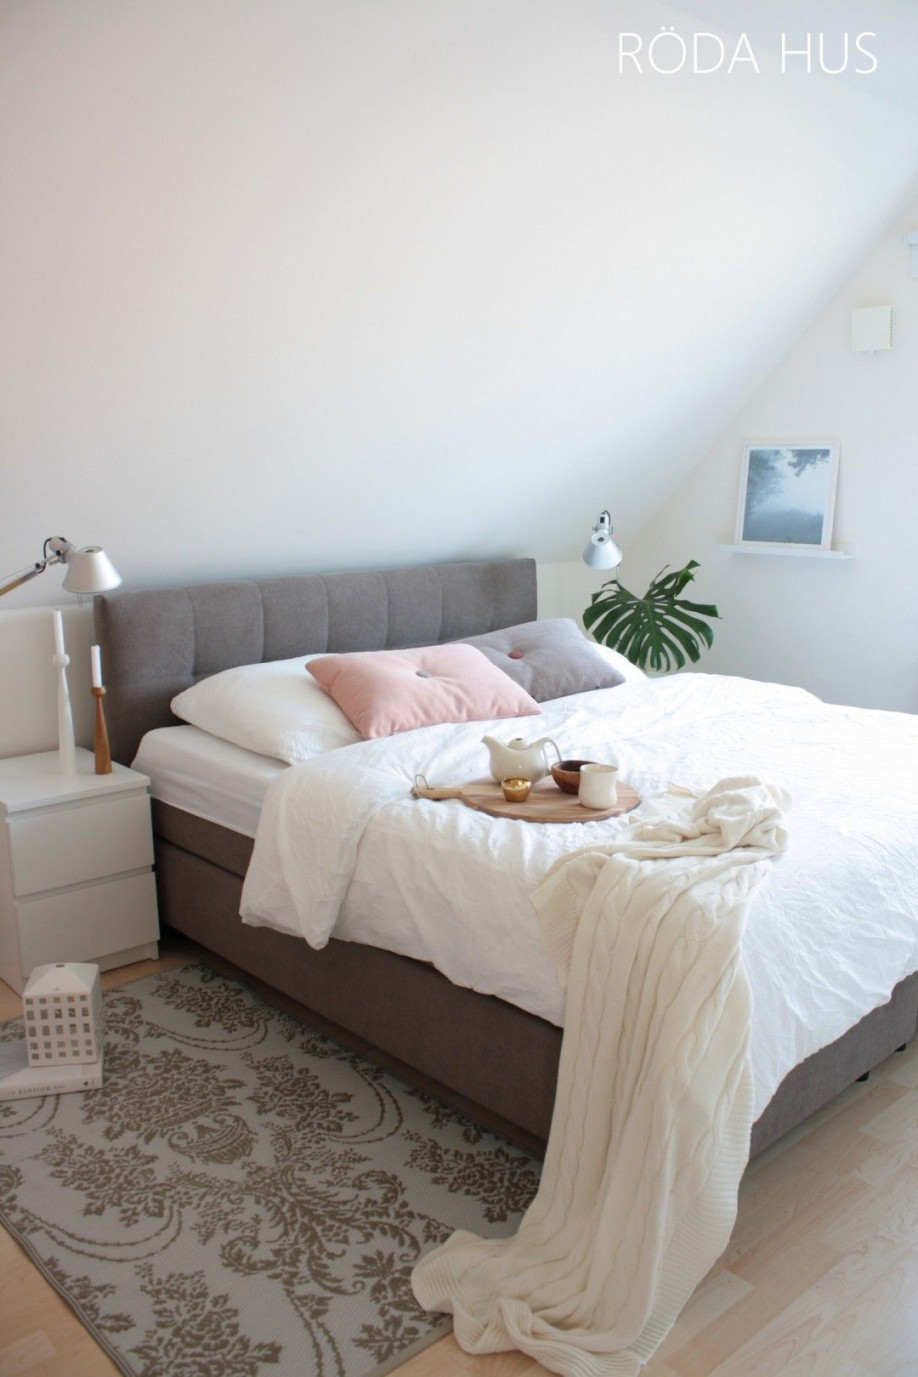 Schlafzimmer Boxspringbett Boxsping Bed Bedroom  Future von Schlafzimmer Boxspringbett Ideen Bild